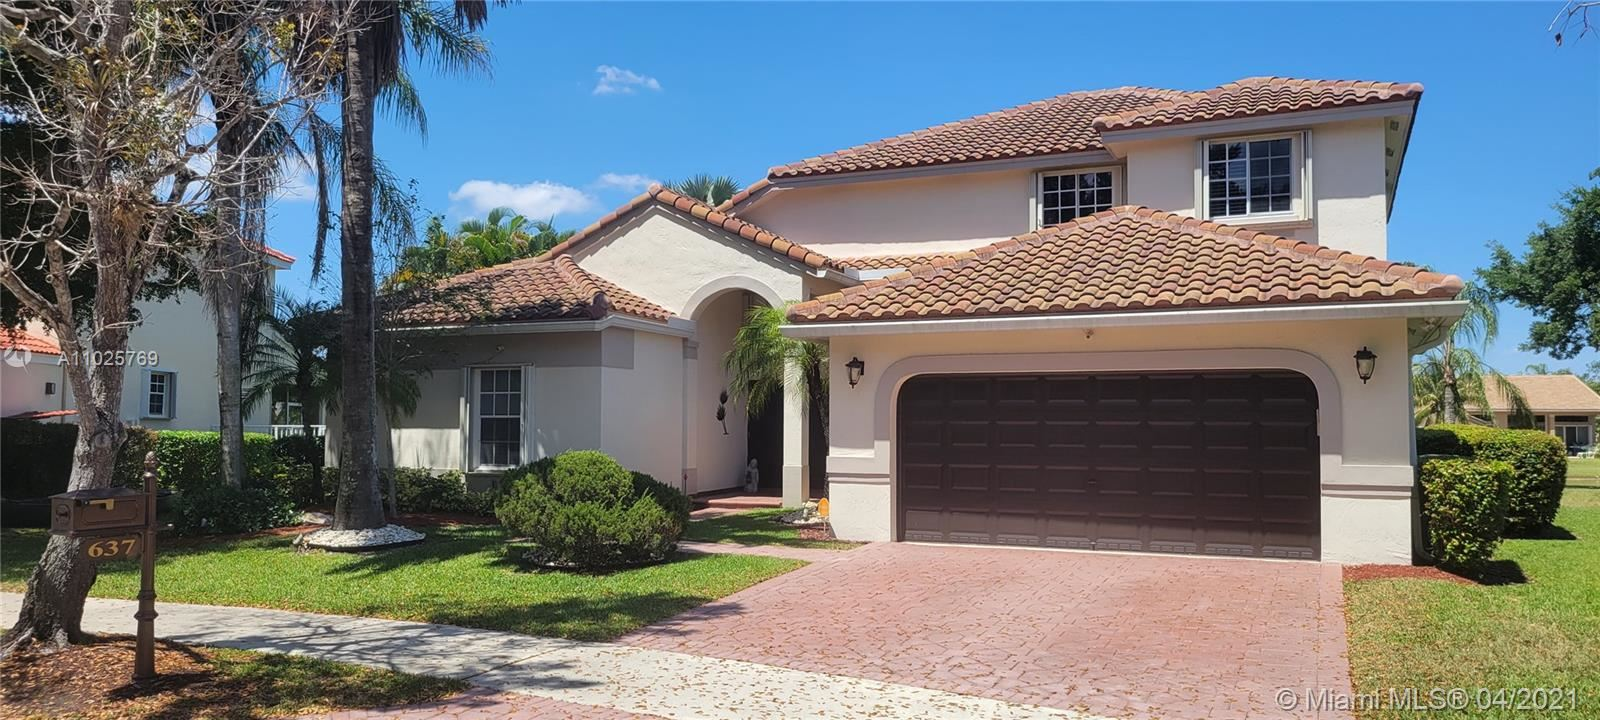 637 Lake Blvd, Weston, FL 33326 - #: A11025769